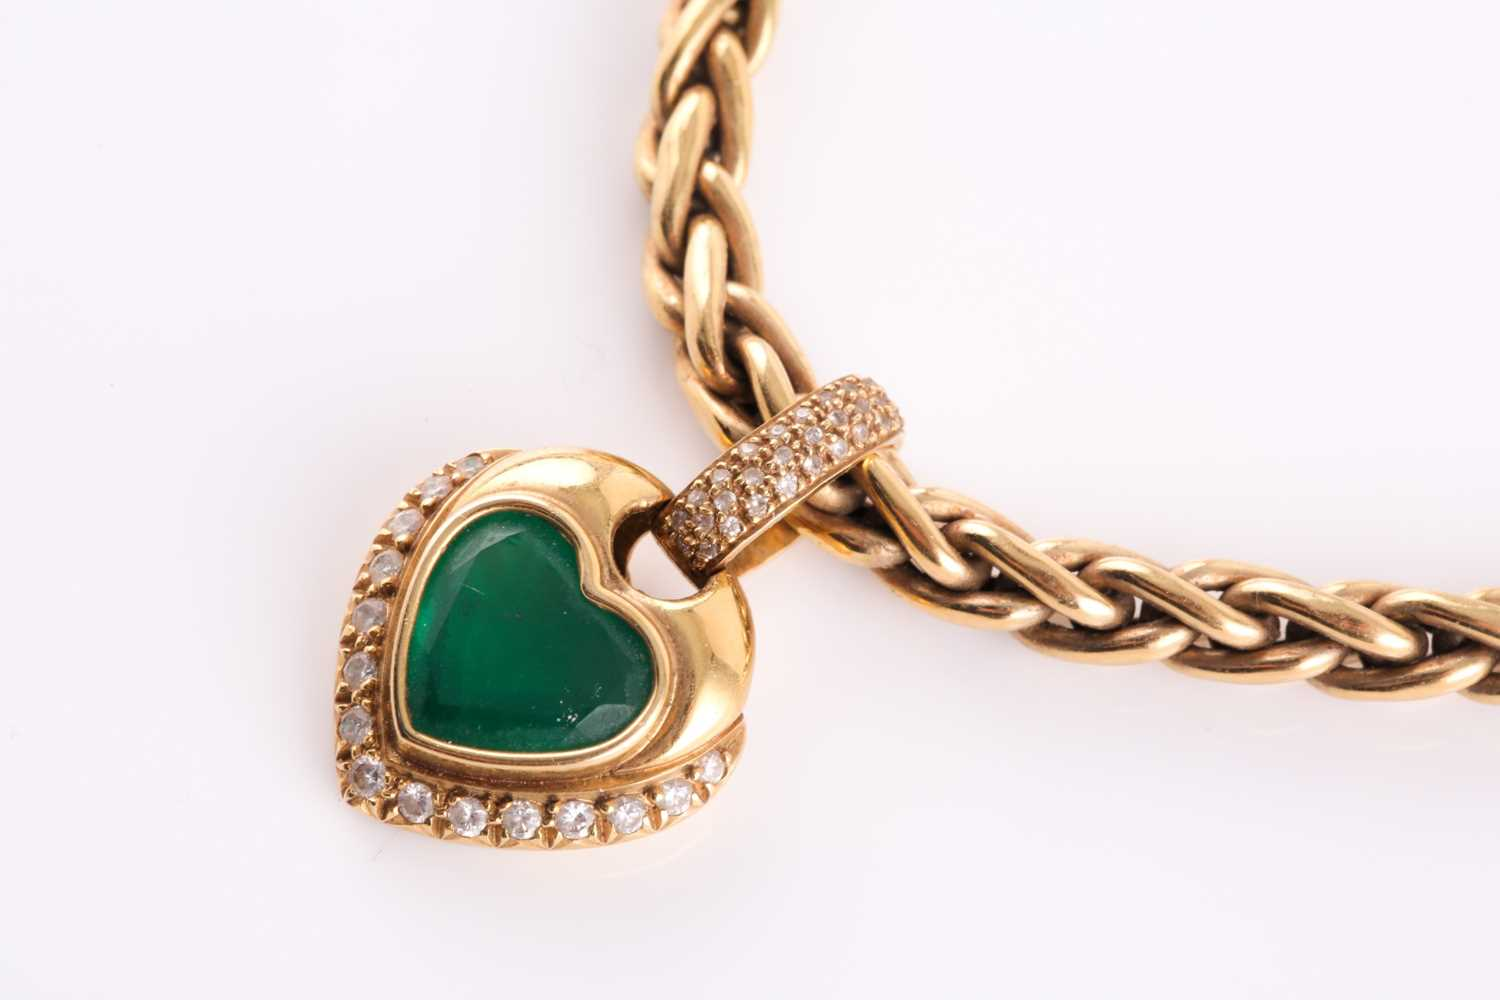 An 18ct yellow gold, diamond, and green stone heart-shaped pendant, with pave-set diamond suspension - Image 5 of 5